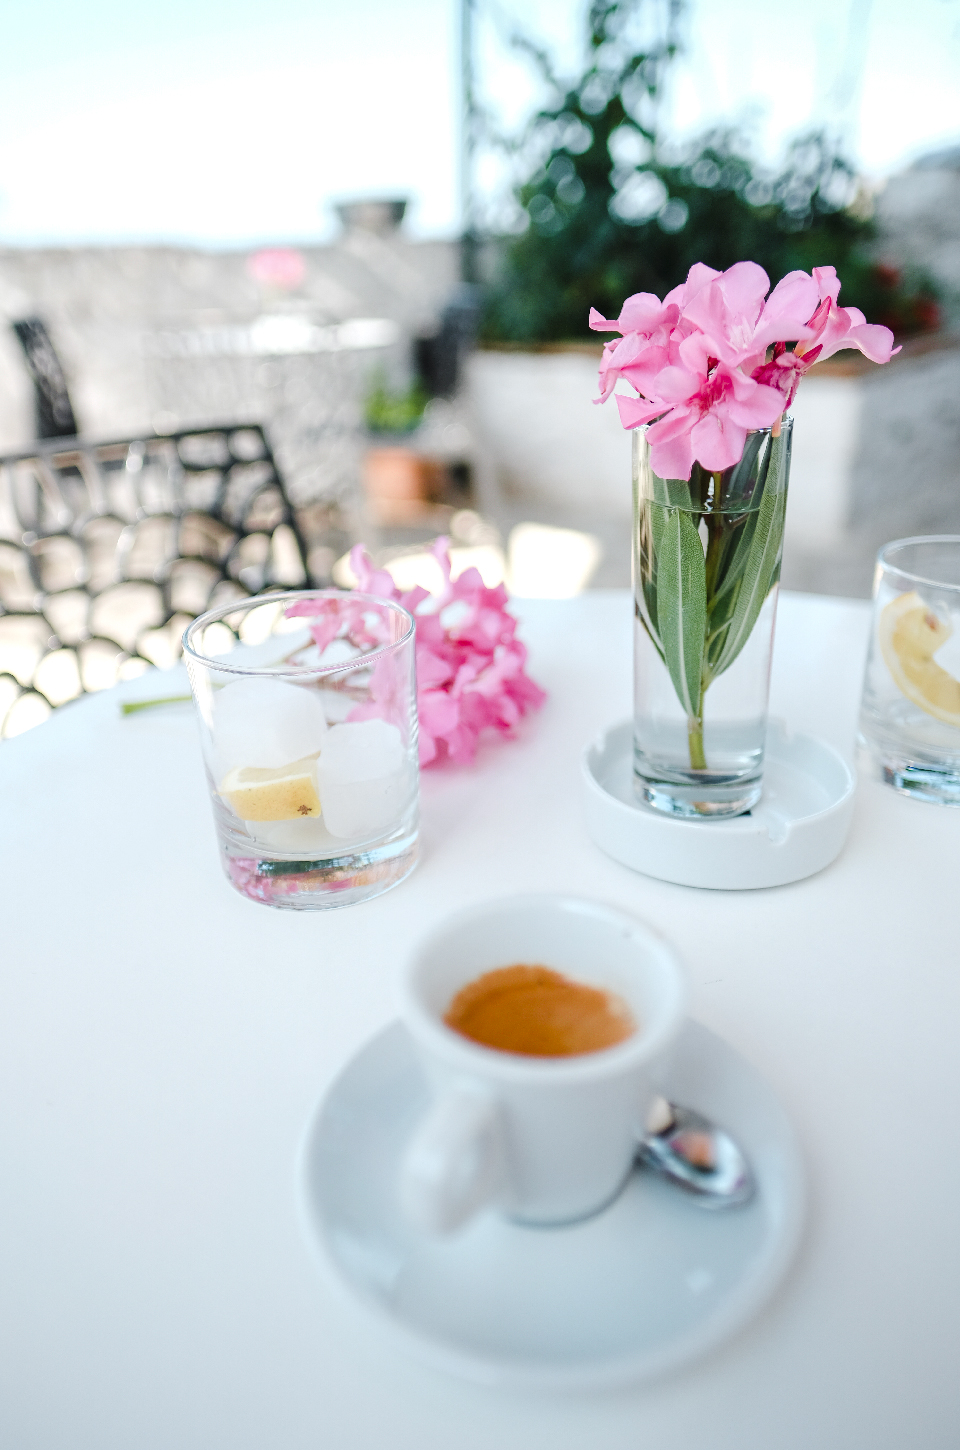 cafe and pink flowers, Albania road trip